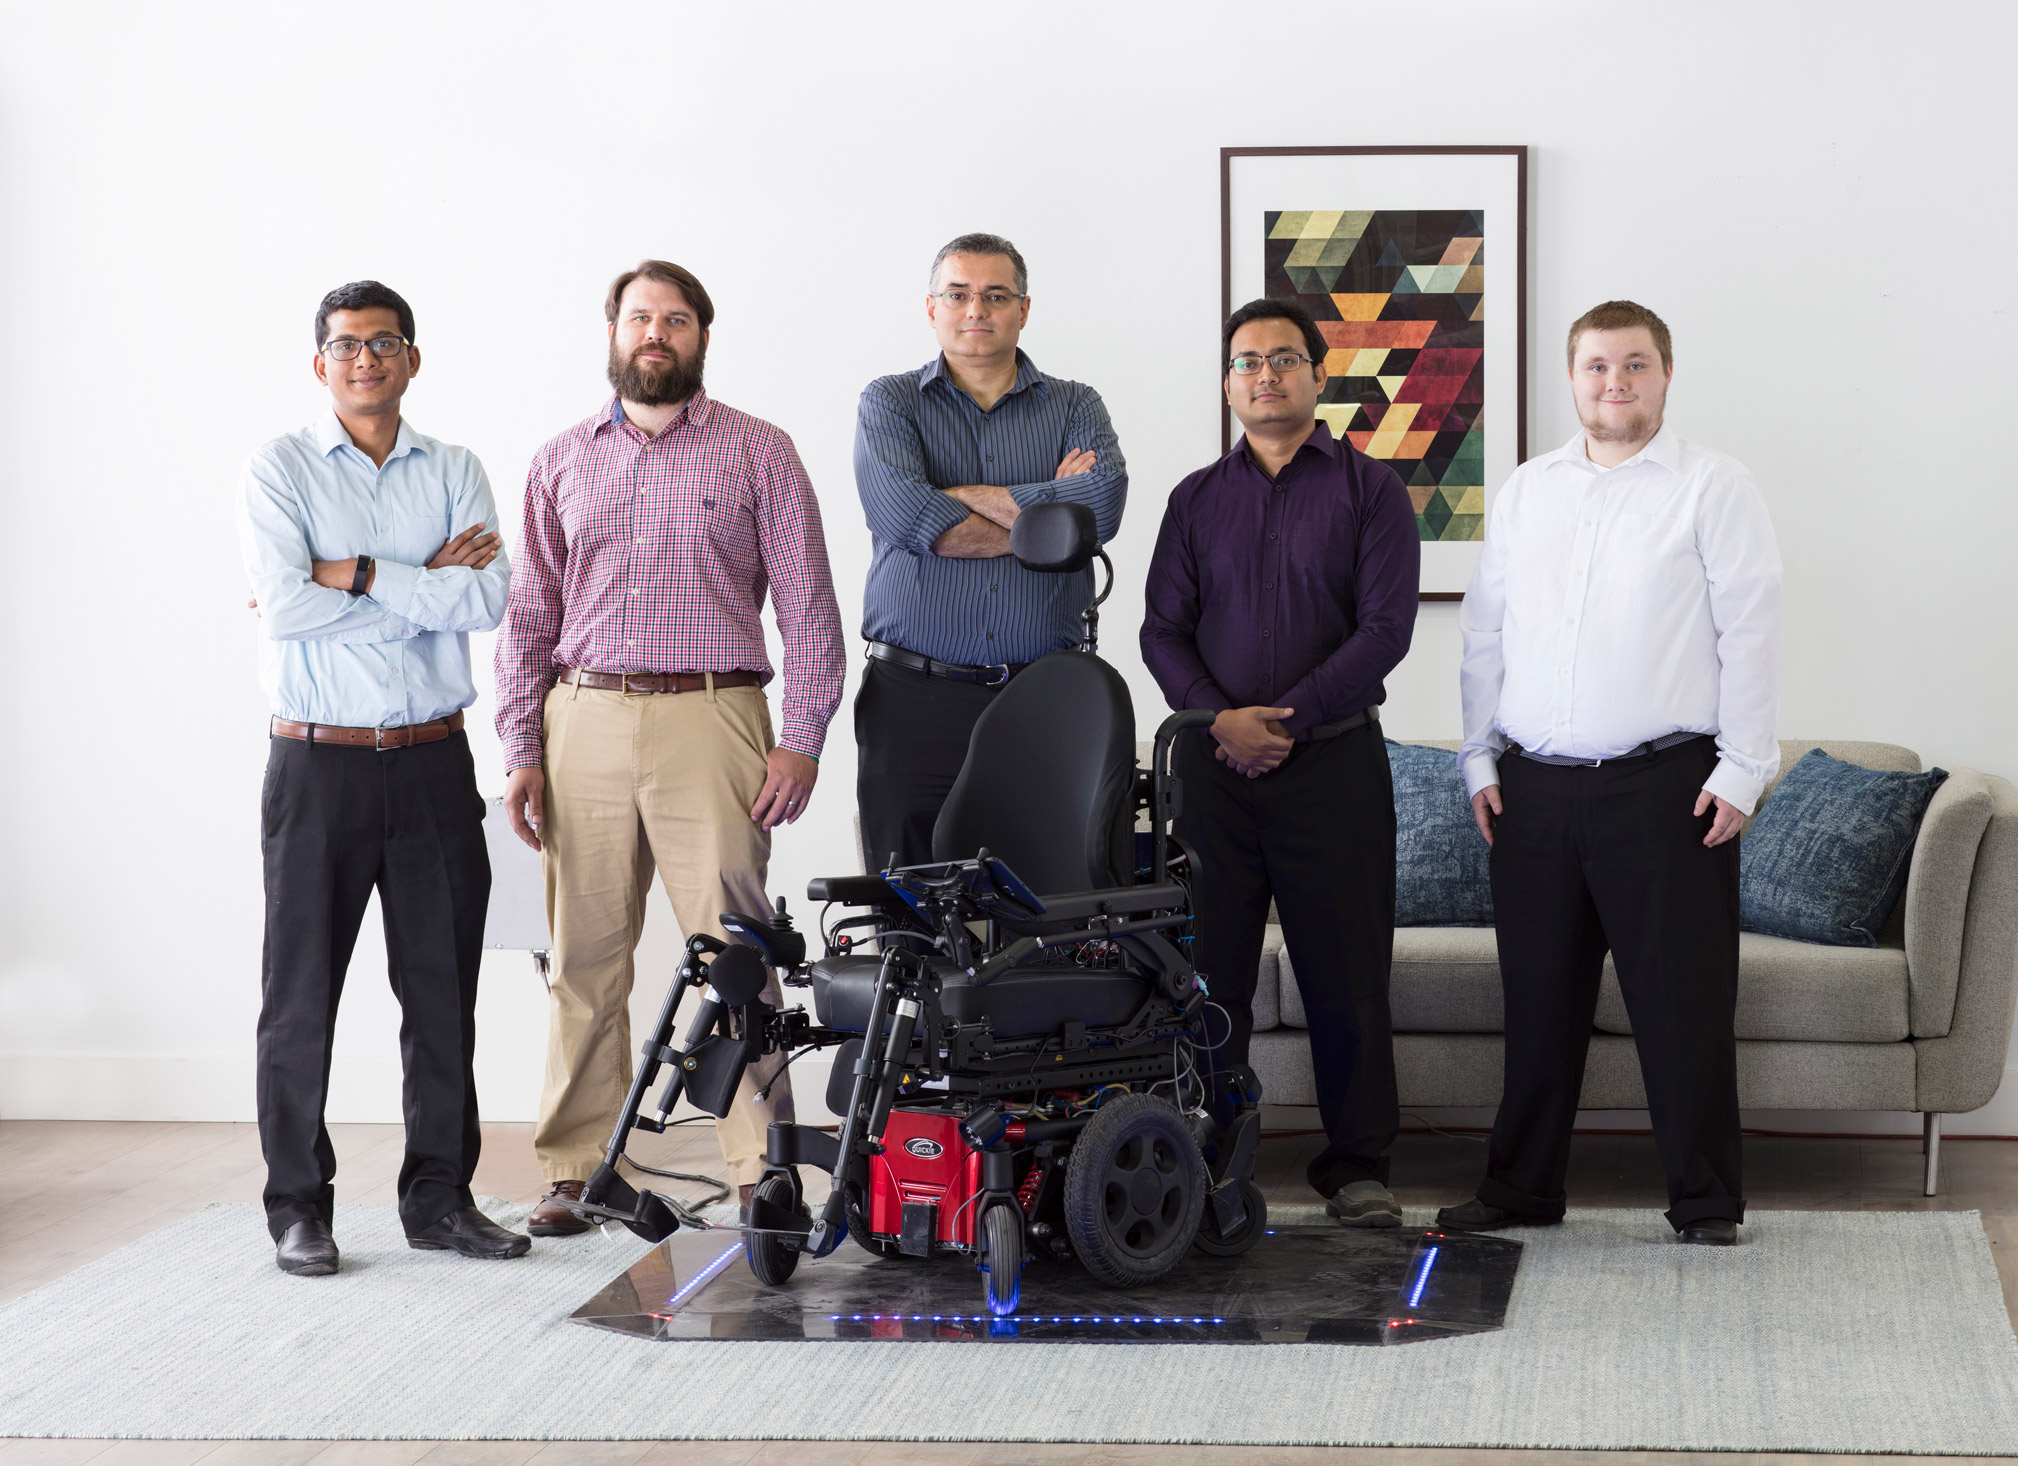 Wireless wheel chair research group